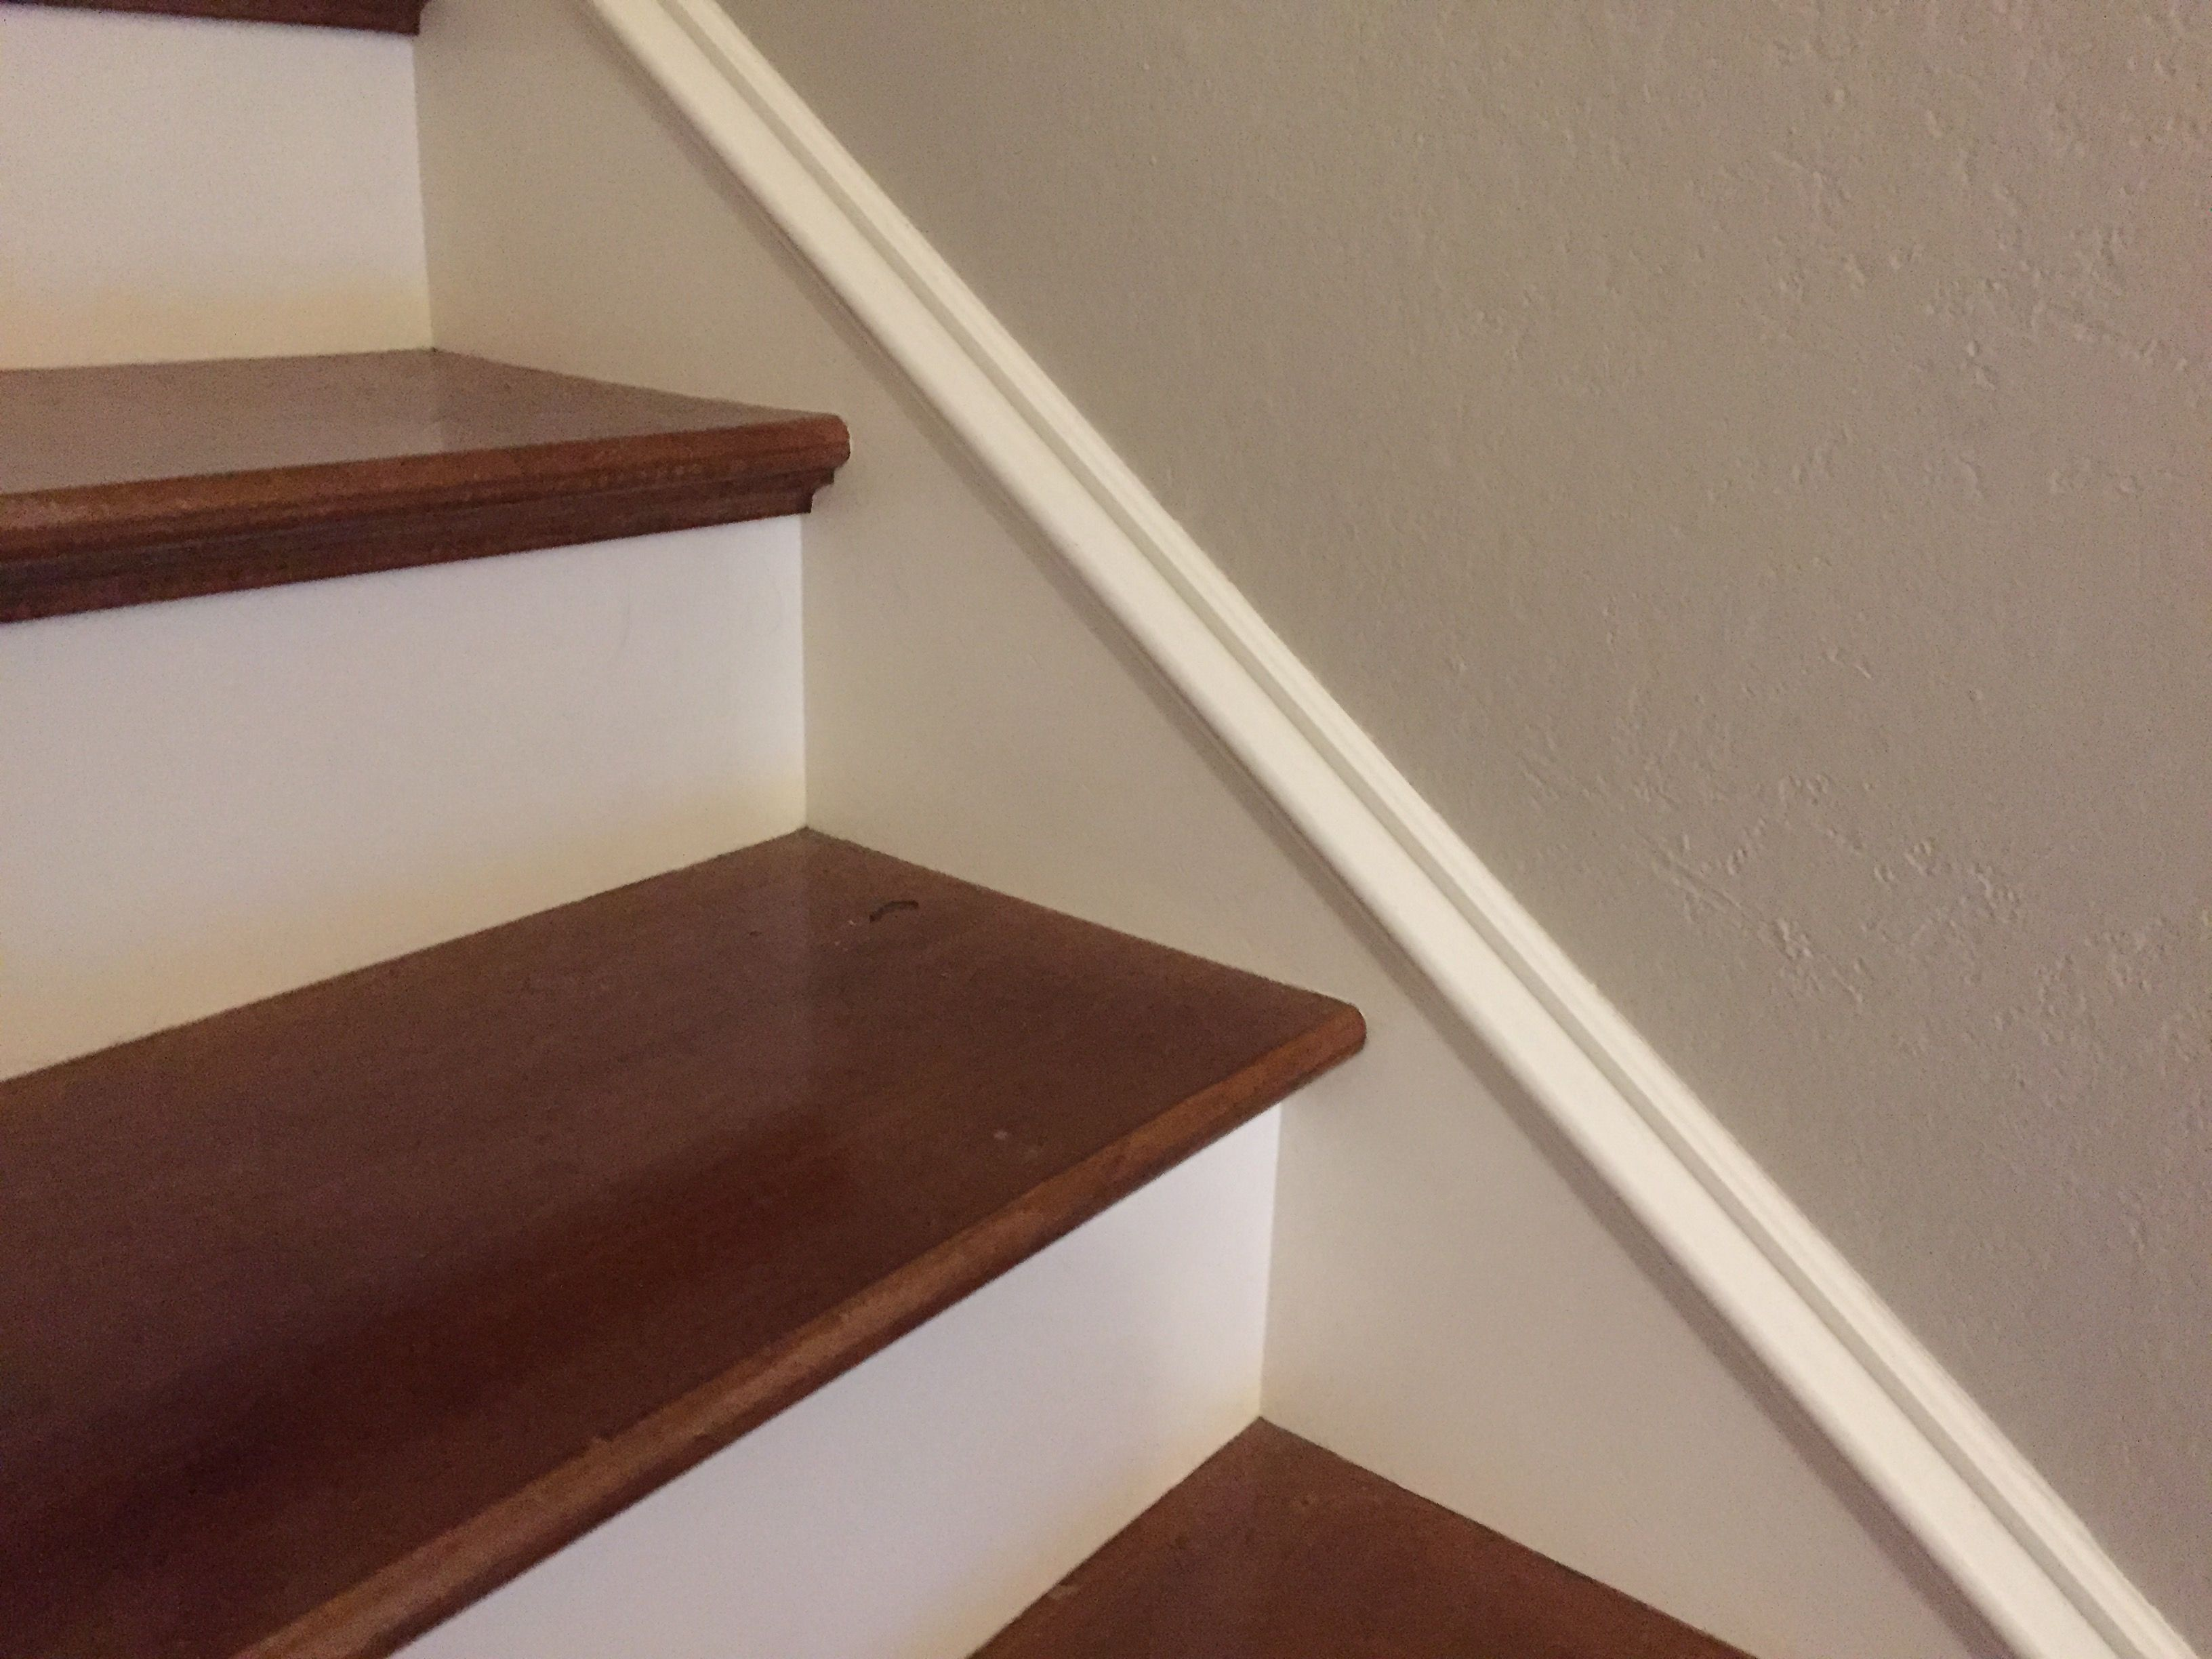 White Stair Faces, Lip With Wood Trim Under